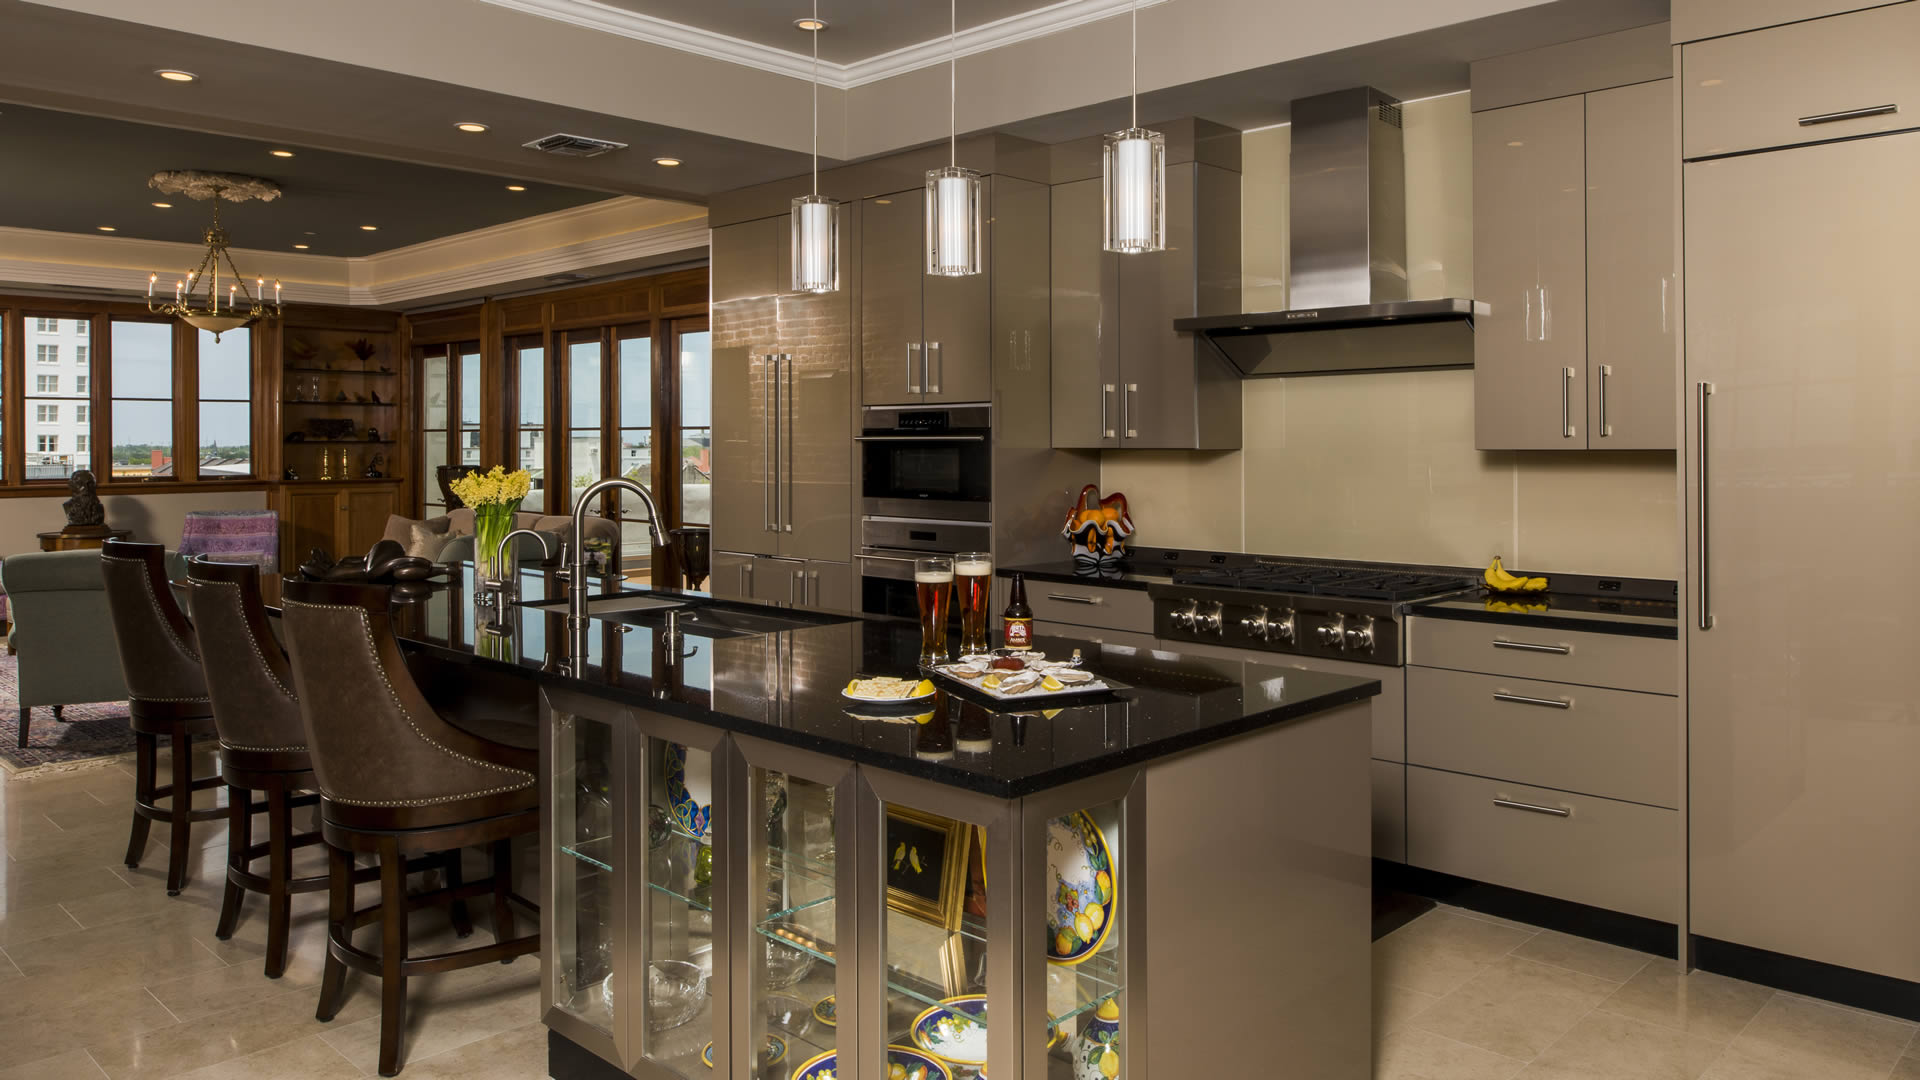 Interior Design Photos: Contemporary Style Kitchen Design ...